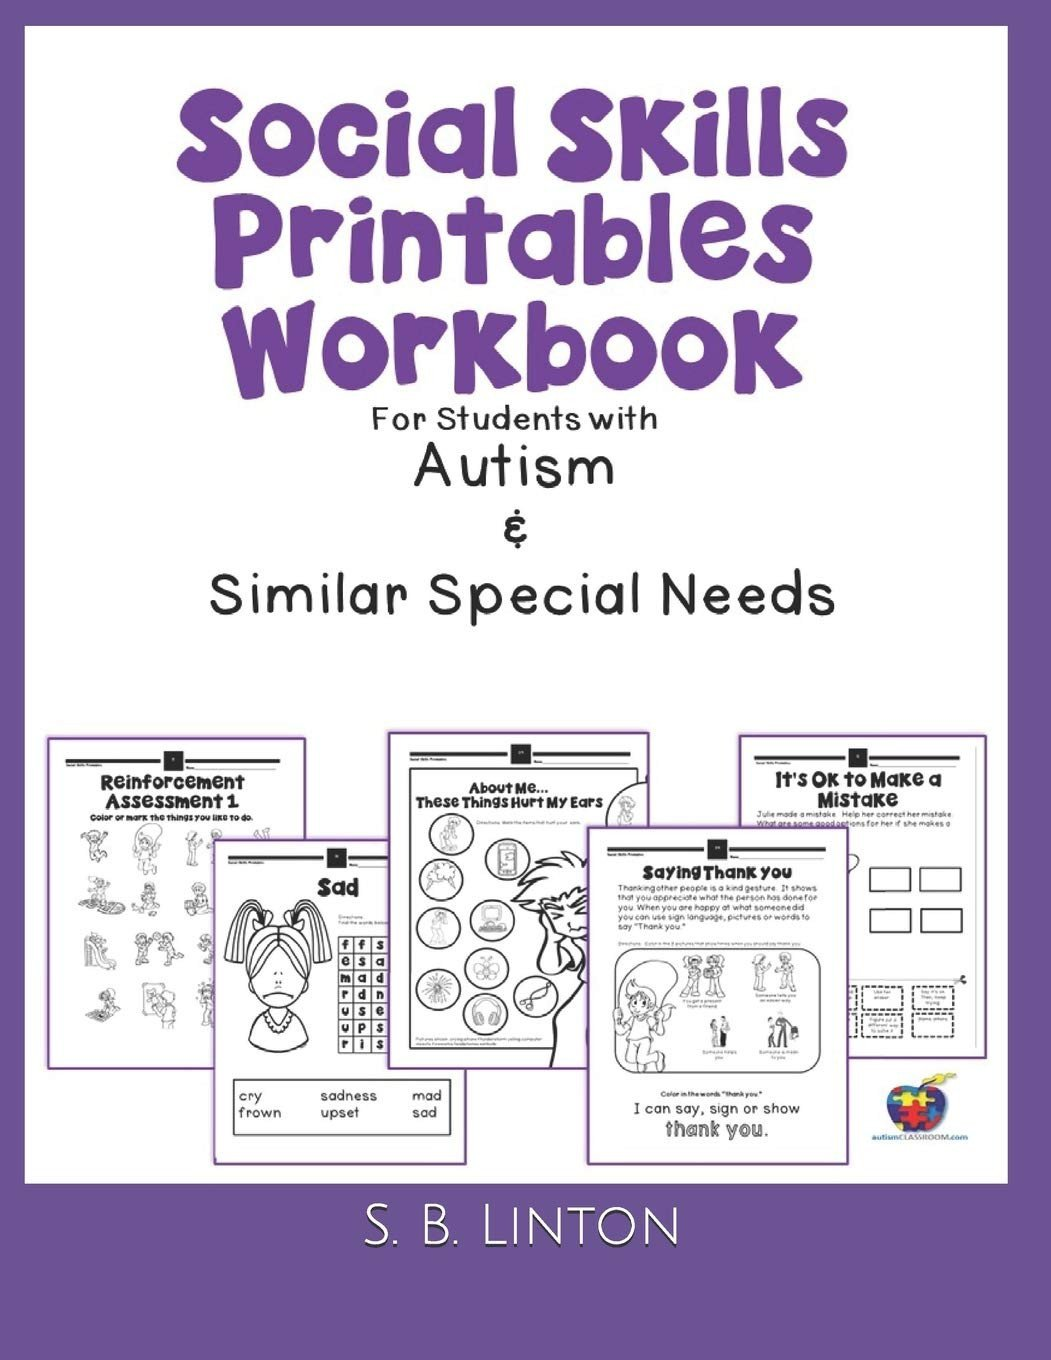 Free Printable social Skills Worksheets social Skills Printables Workbook for Students with Autism